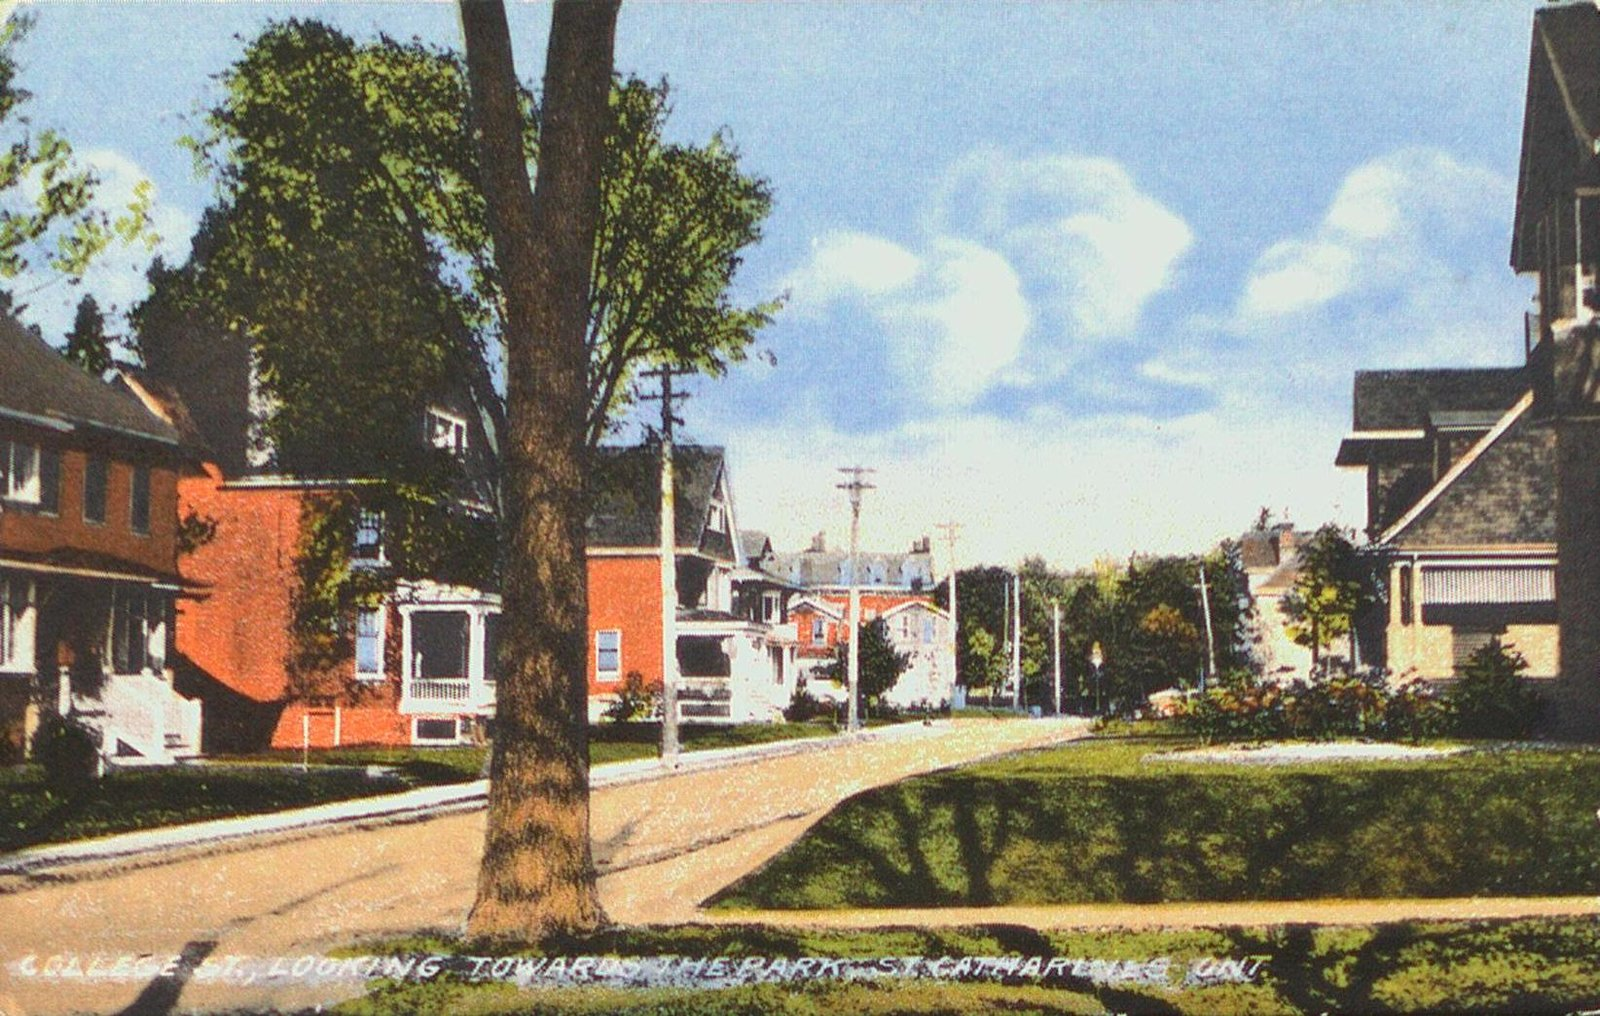 College Street looking east towards the park (Montebello)